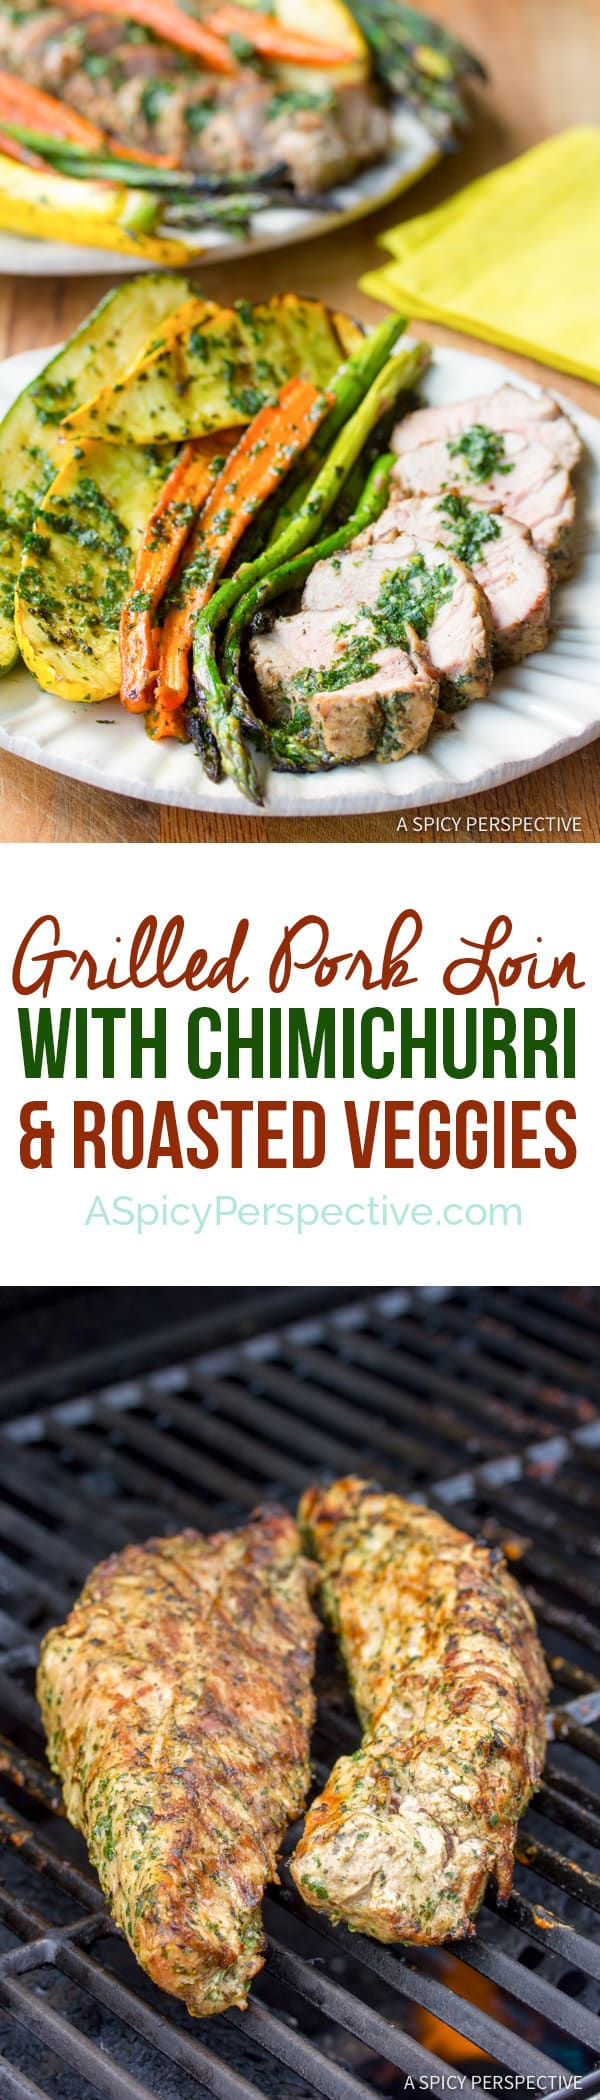 Easy Healthy Grilled Pork Tenderloin with Chimichurri and Roasted Vegetables | ASpicyPerspective.com